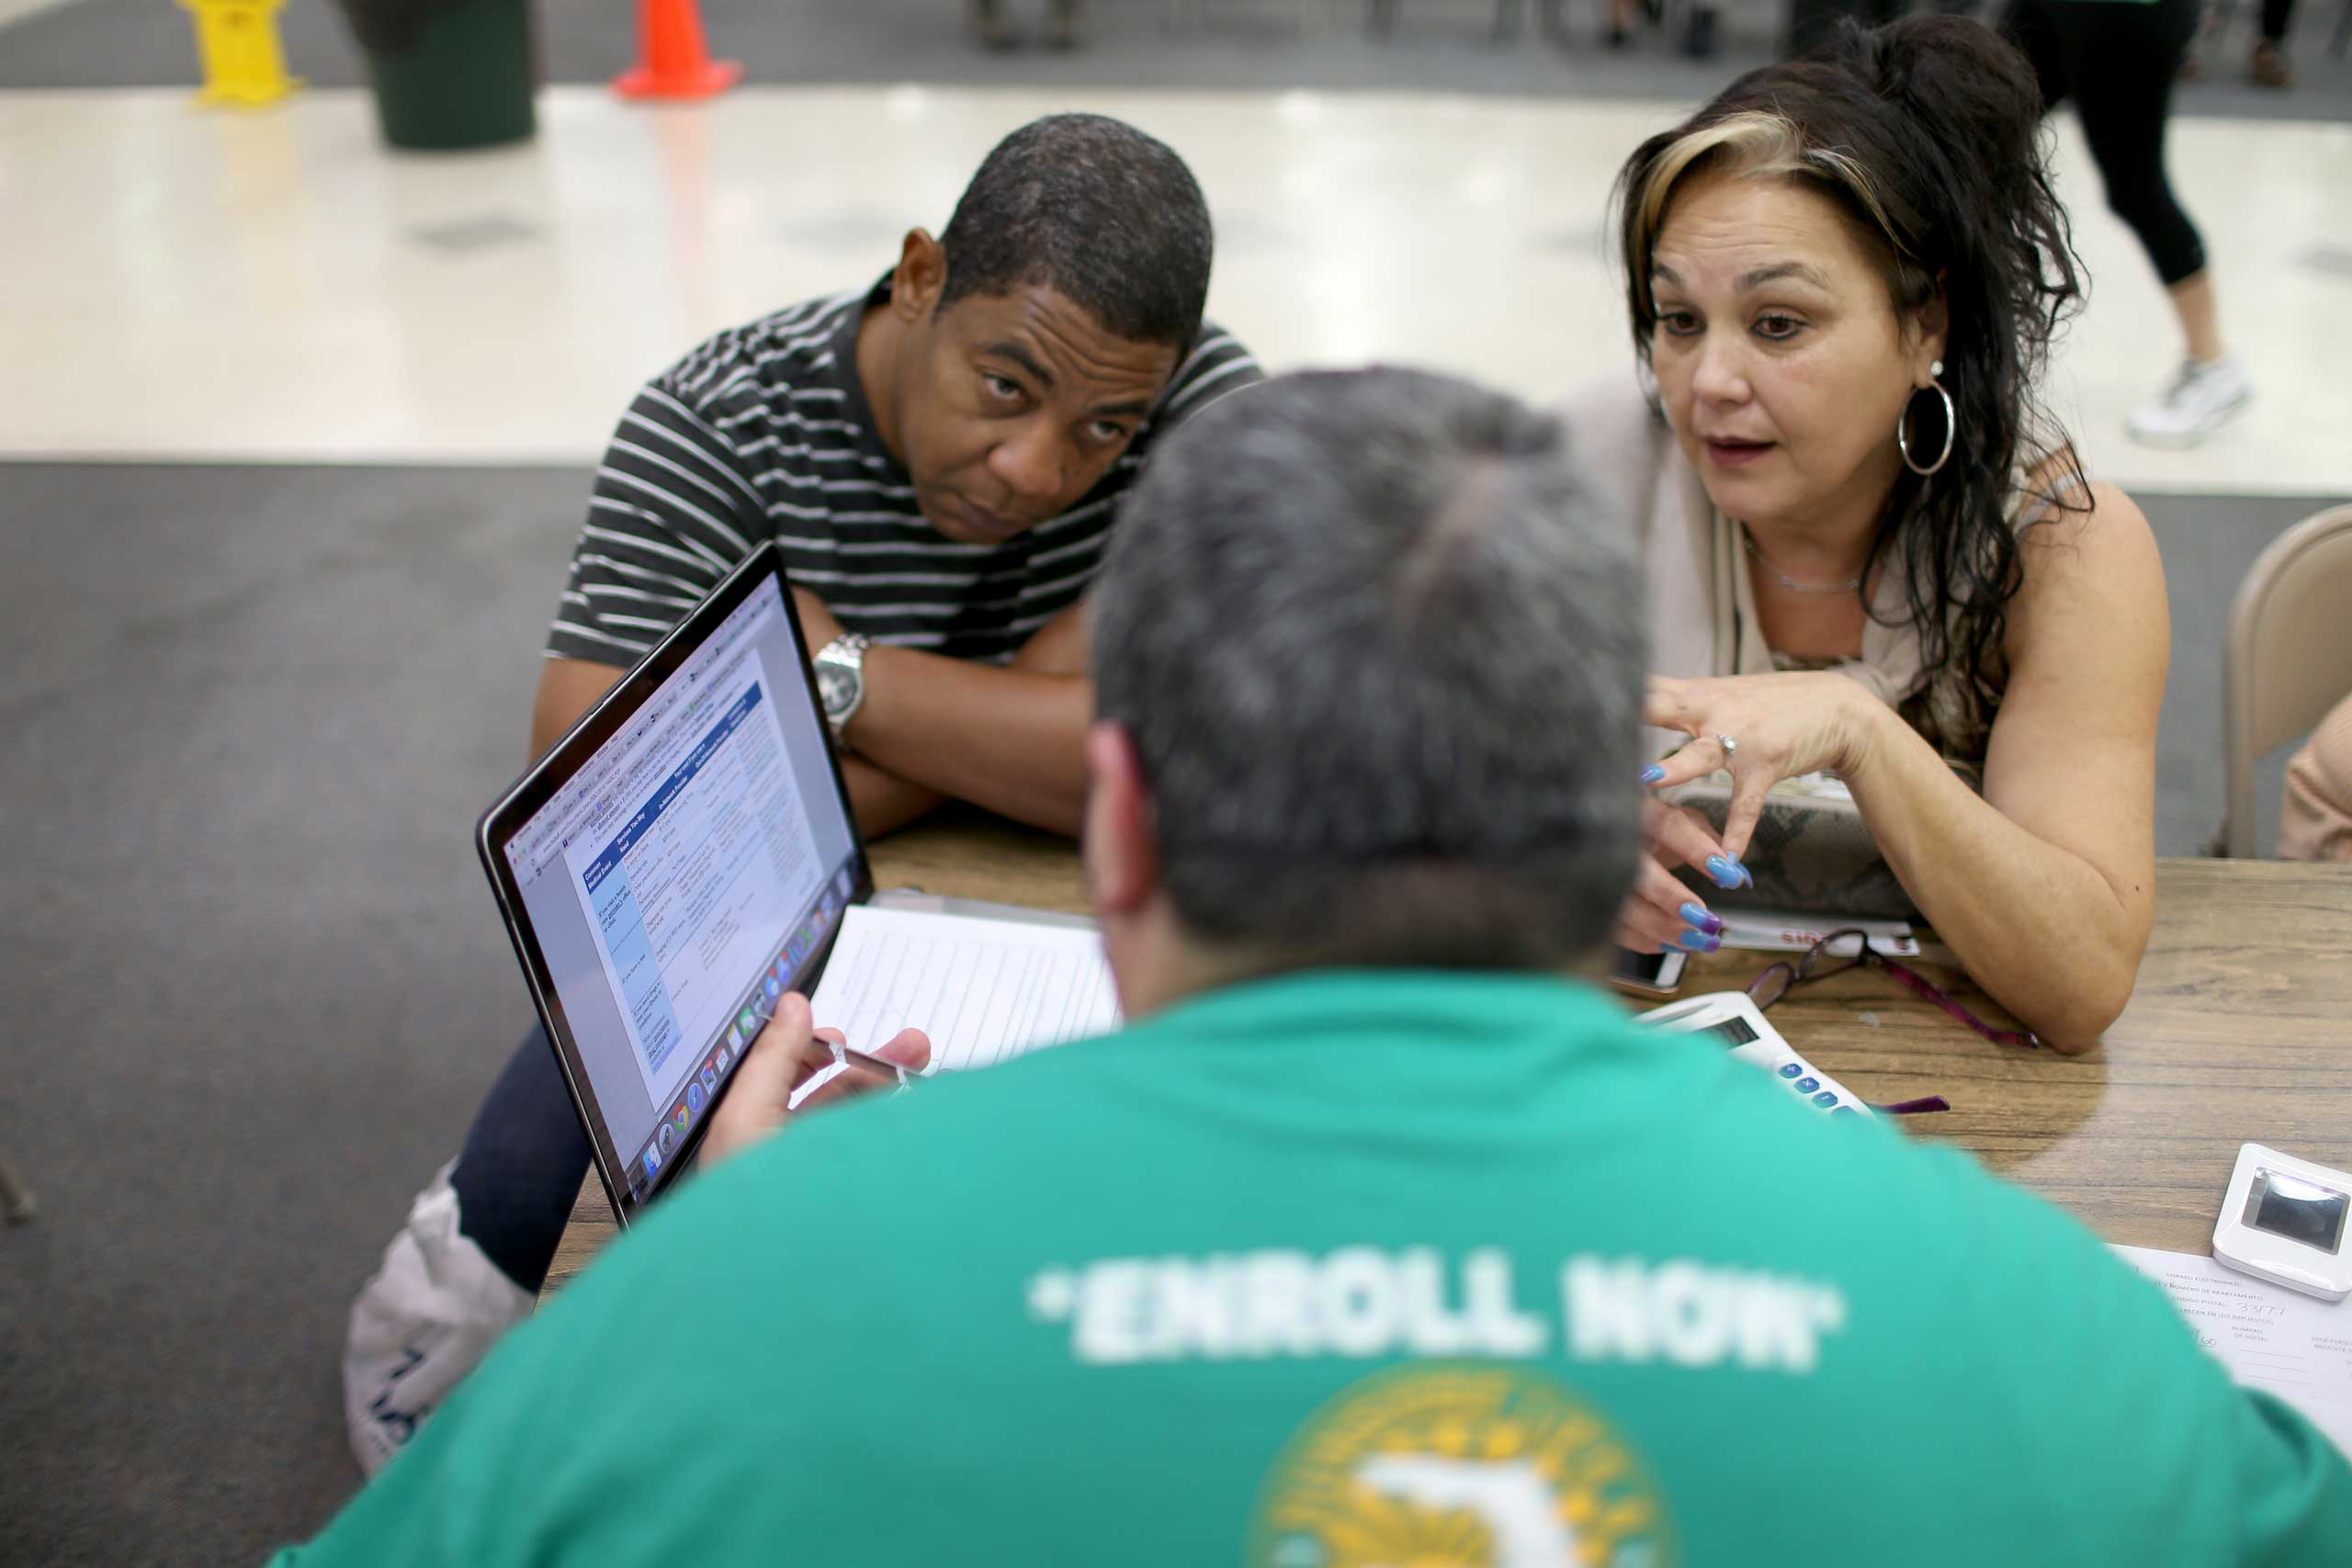 Jose Ramirez, left, and Mariana Silva speak with Yosmay Valdivia, an agent from Sunshine Life and Health Advisors, as they discuss plans available from the Affordable Care Act in the Mall of the Americas on Dec. 15, 2014 in Miami.